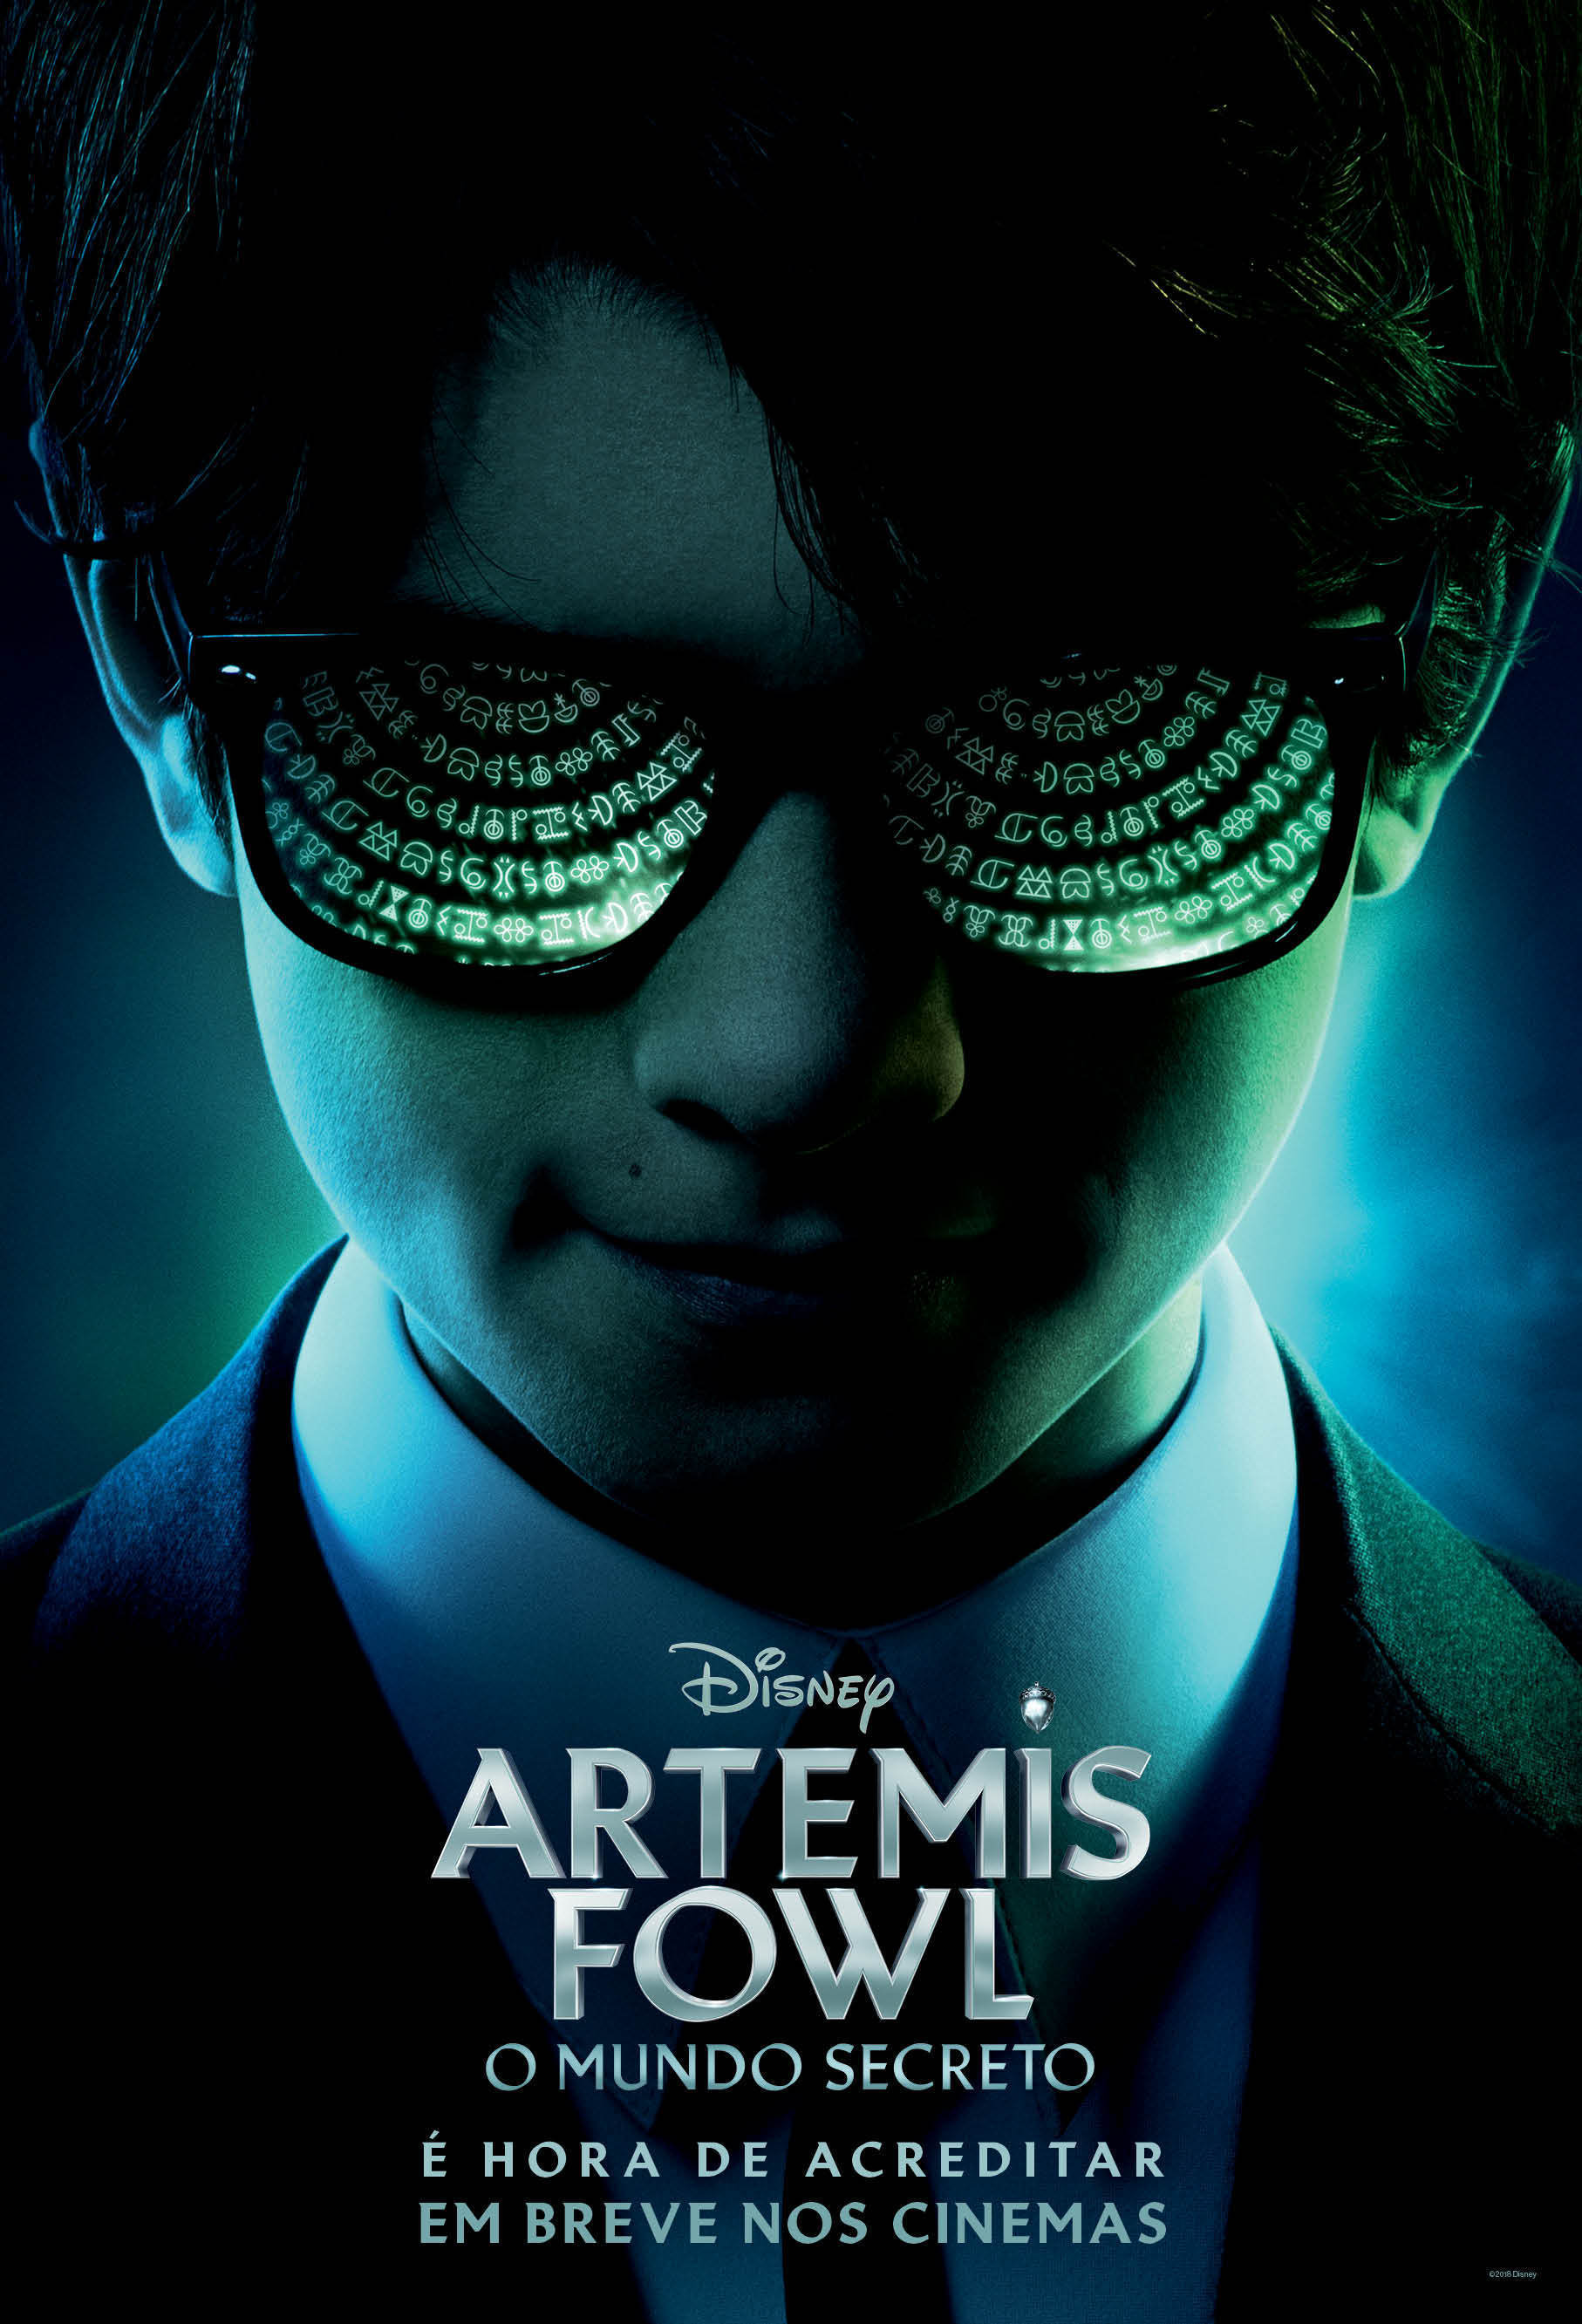 Artemis Fowl Poster featuring Artemis Fowl wearing sunglasses